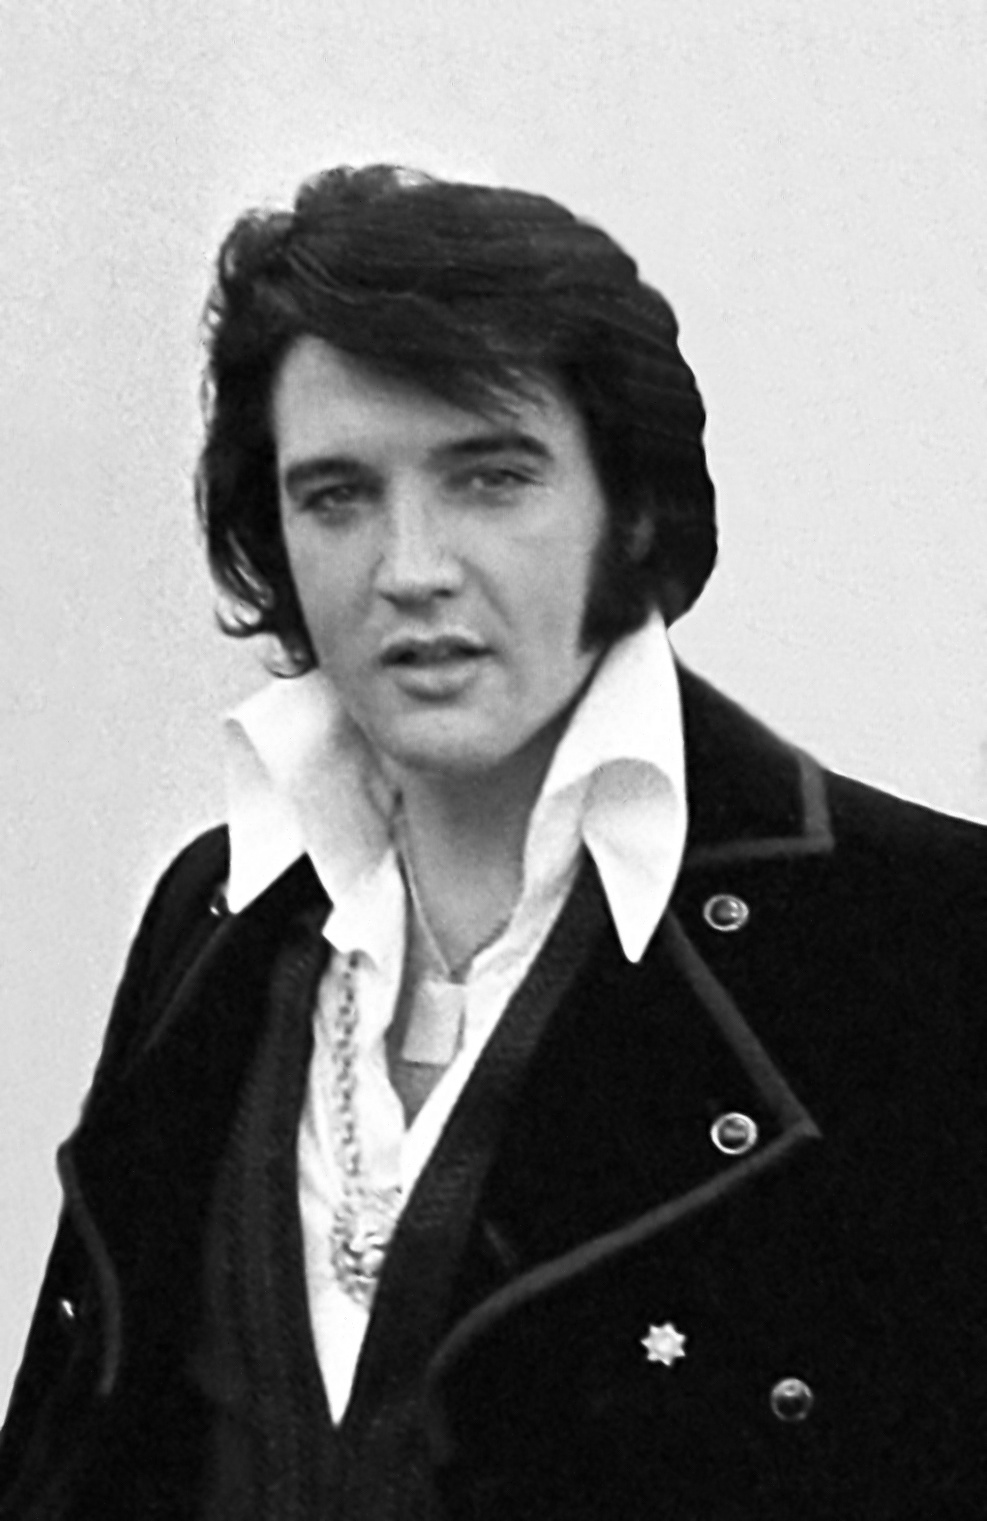 File:Elvis Presley 197...